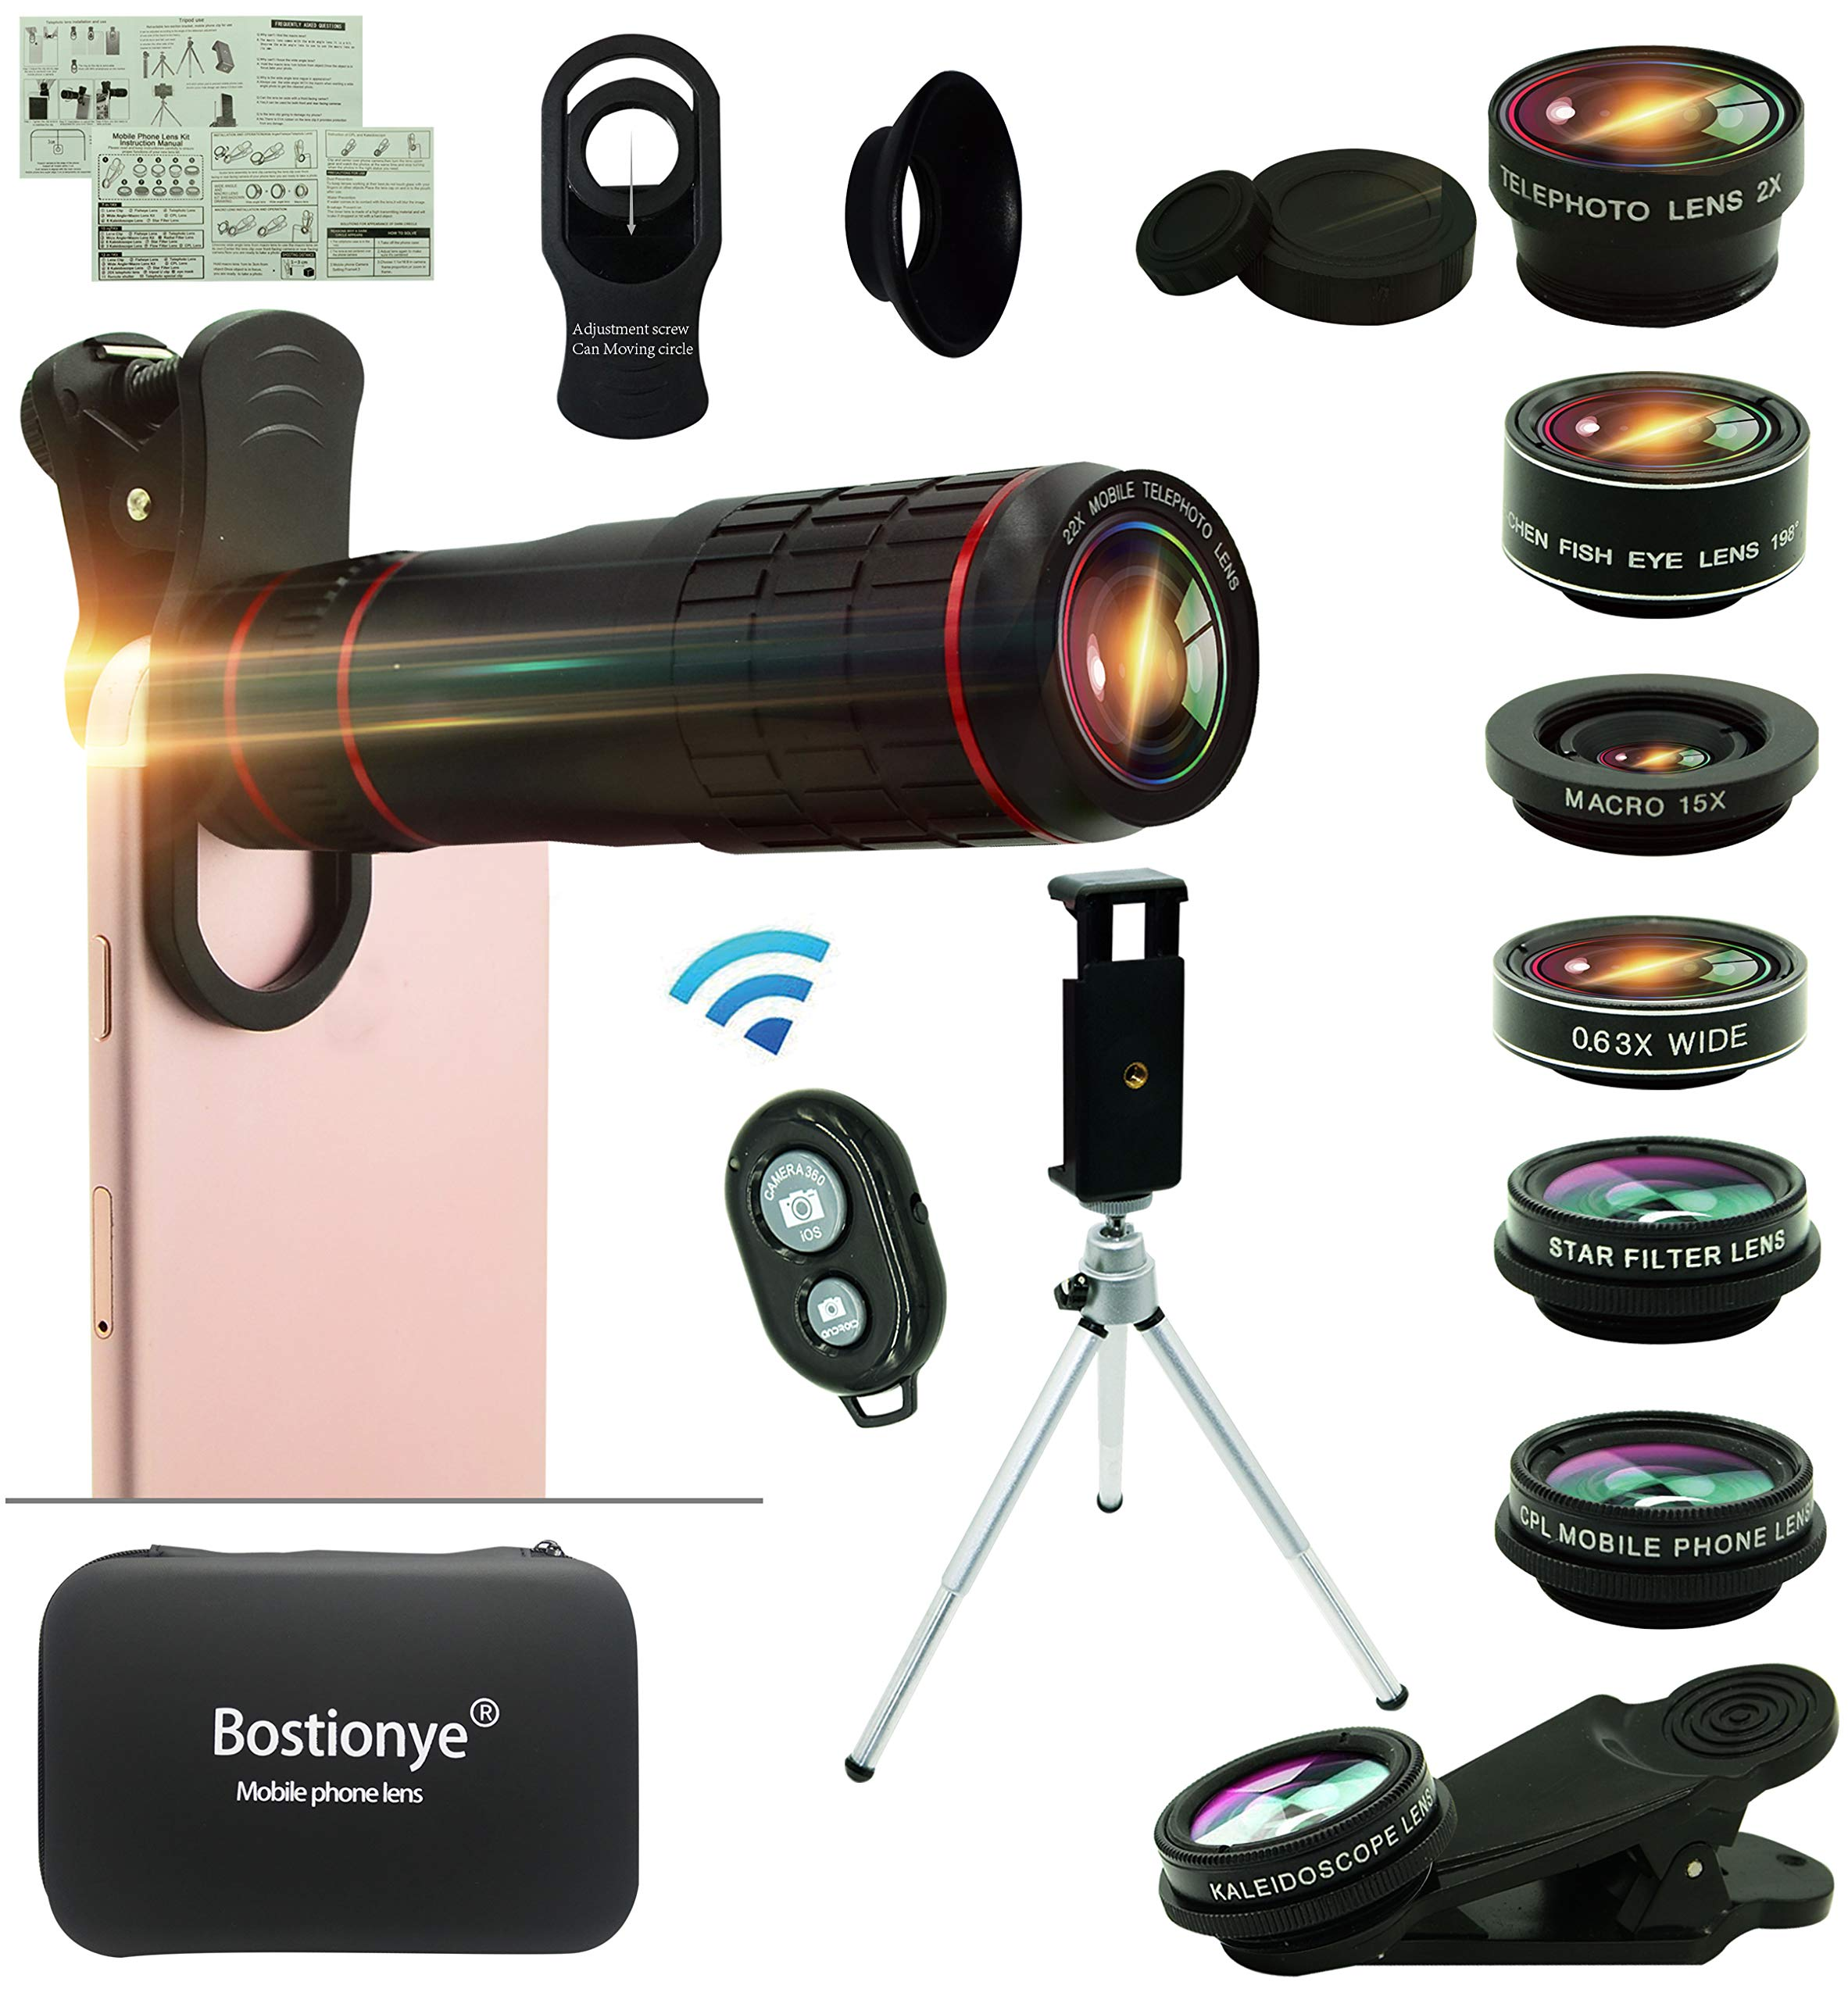 Cell Phone Camera Lens Kit,14 in 1 Universal 22x Zoom Telephoto,0.63Wide Angle+15X Macro+198°Fisheye+2X Telephoto+Kaleidoscope+CPL/Starlight/Eyemask/Tripod/Remote Shutter,For Iphone Smartphone (black) by Bostionye